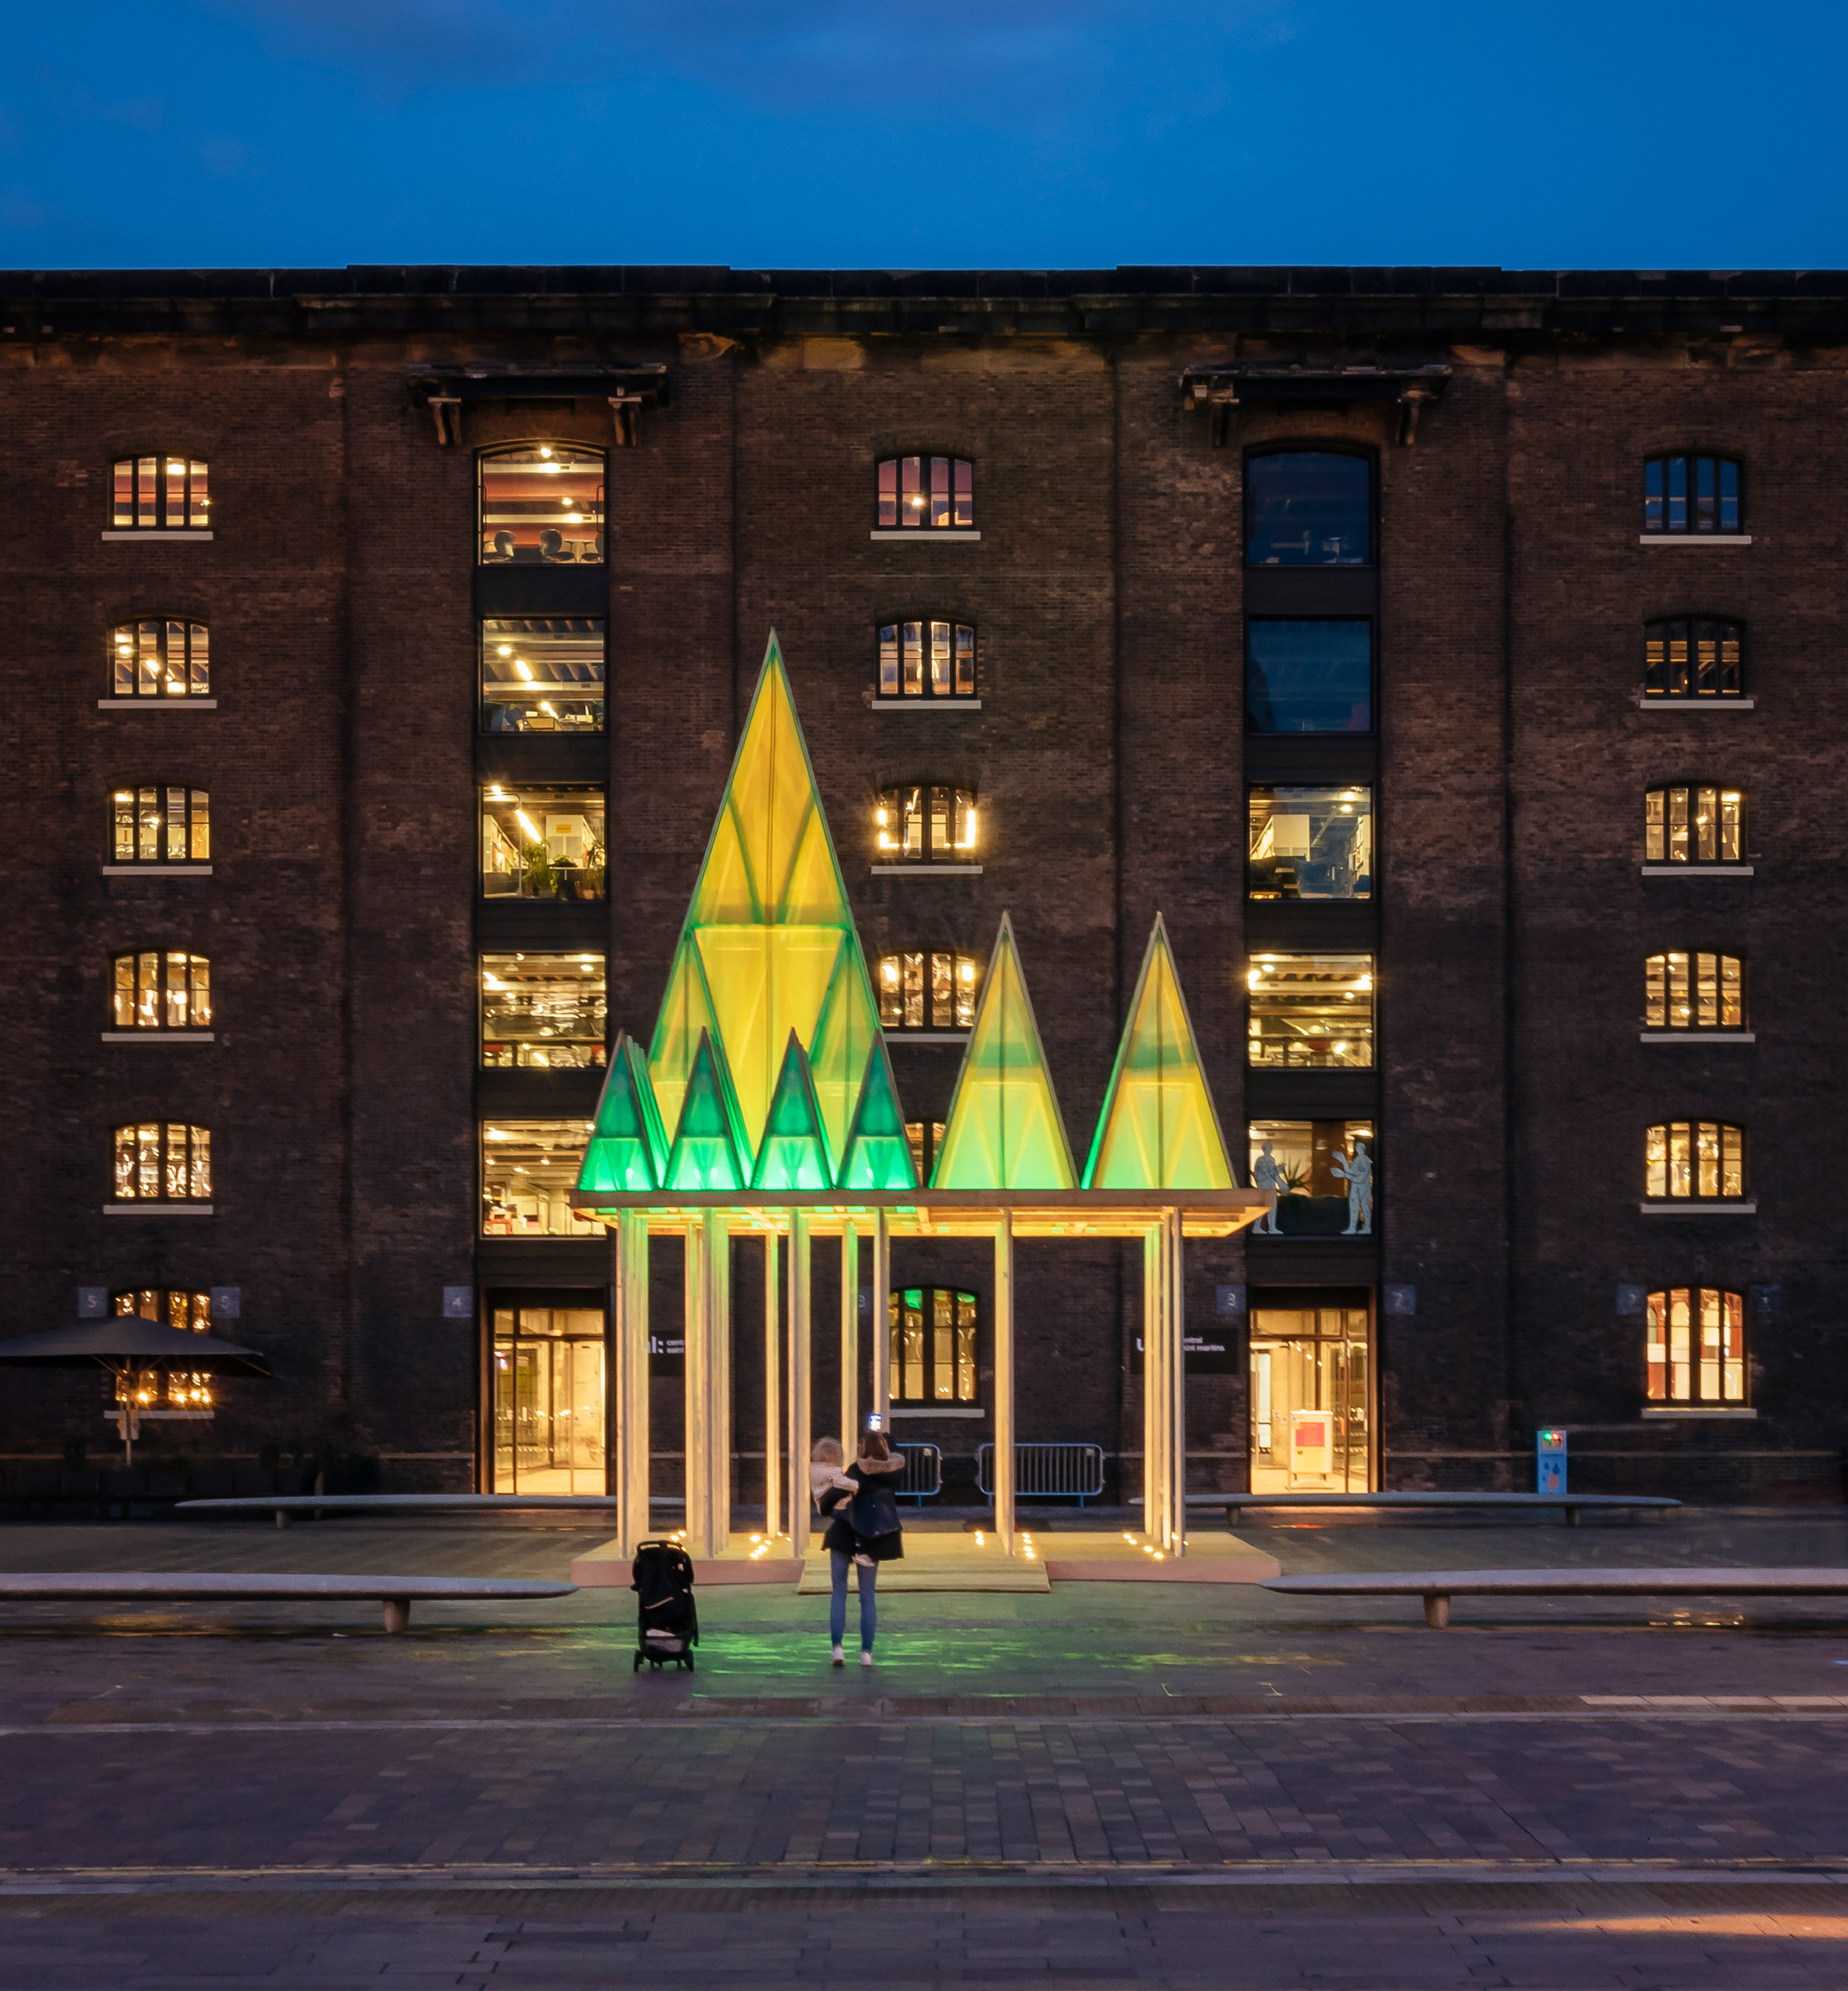 The Electric Nemeton Christmas installation by Sam Jacob Studio in King's Cross, London, at night